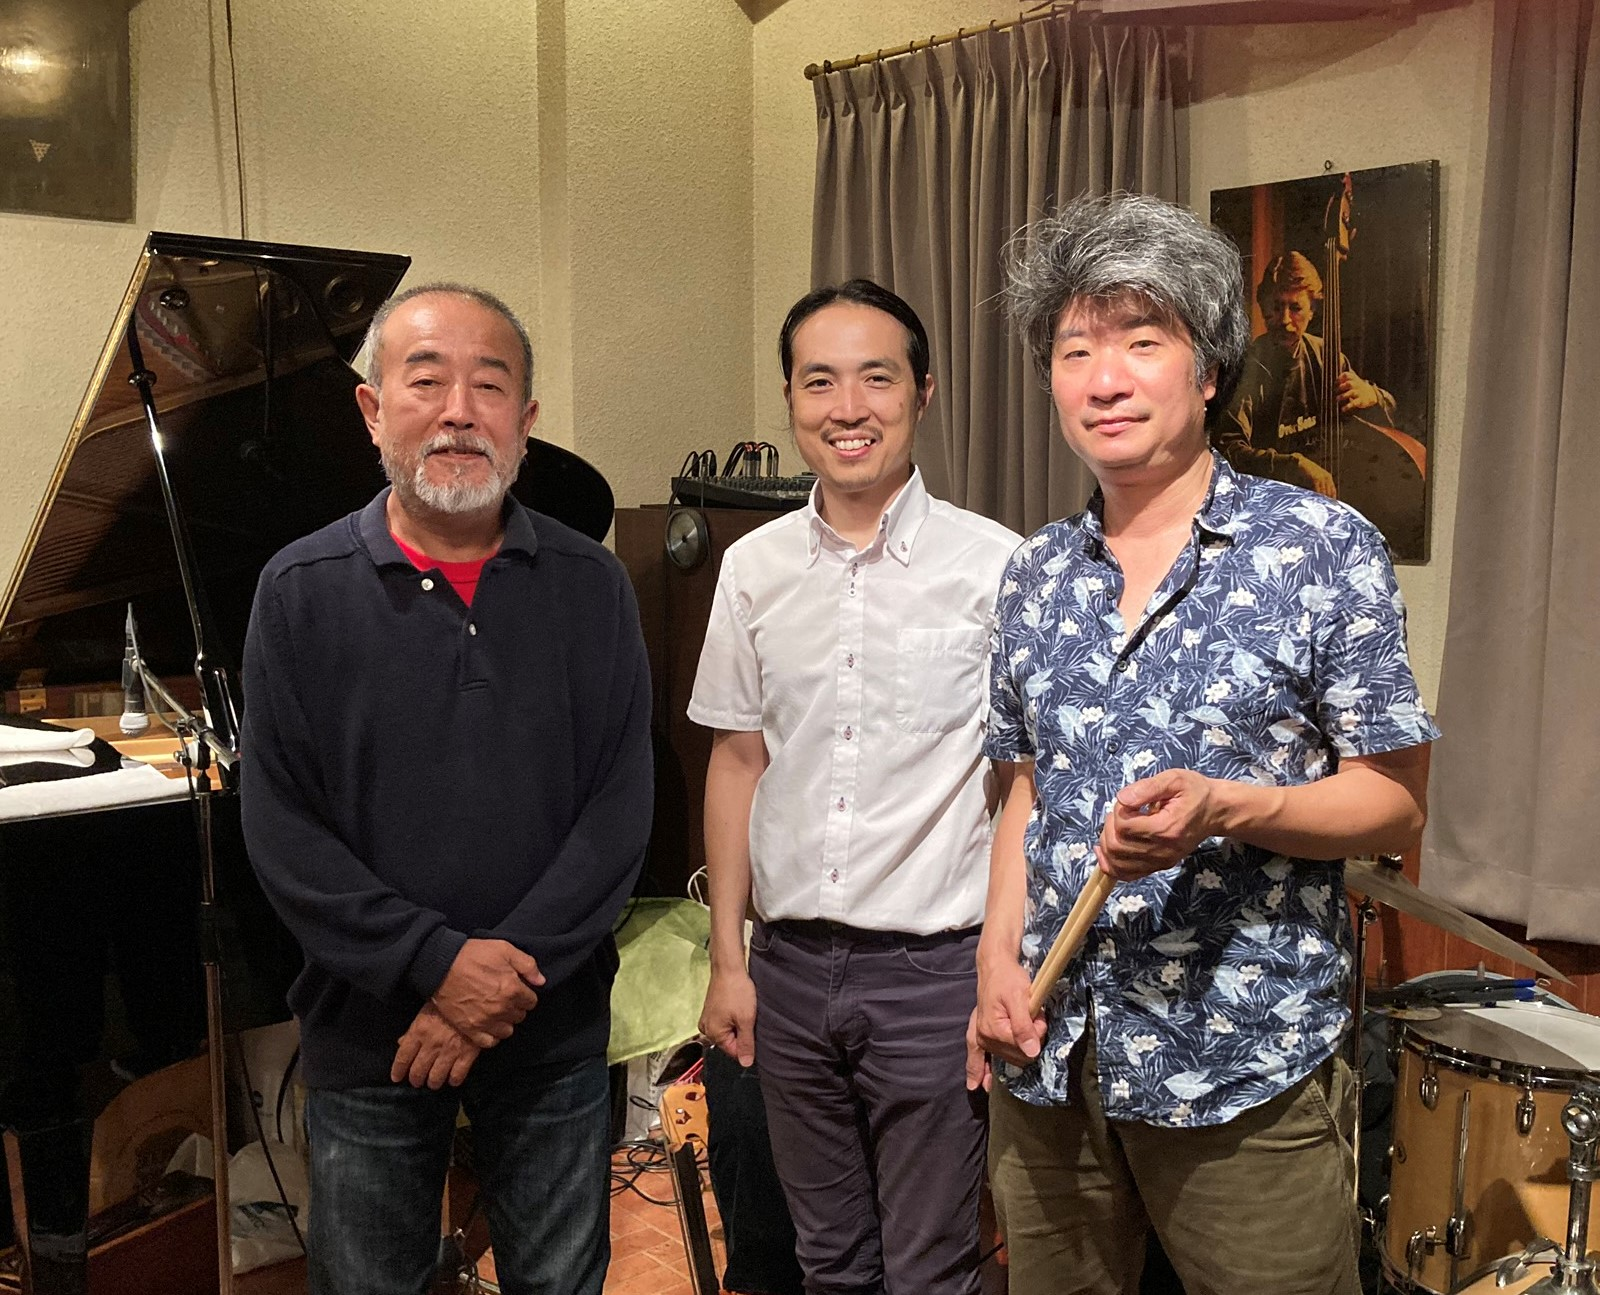 http://jazzclub-overseas.com/blog/jazz_club_overseas/okabetrioMG_0209.jpeg